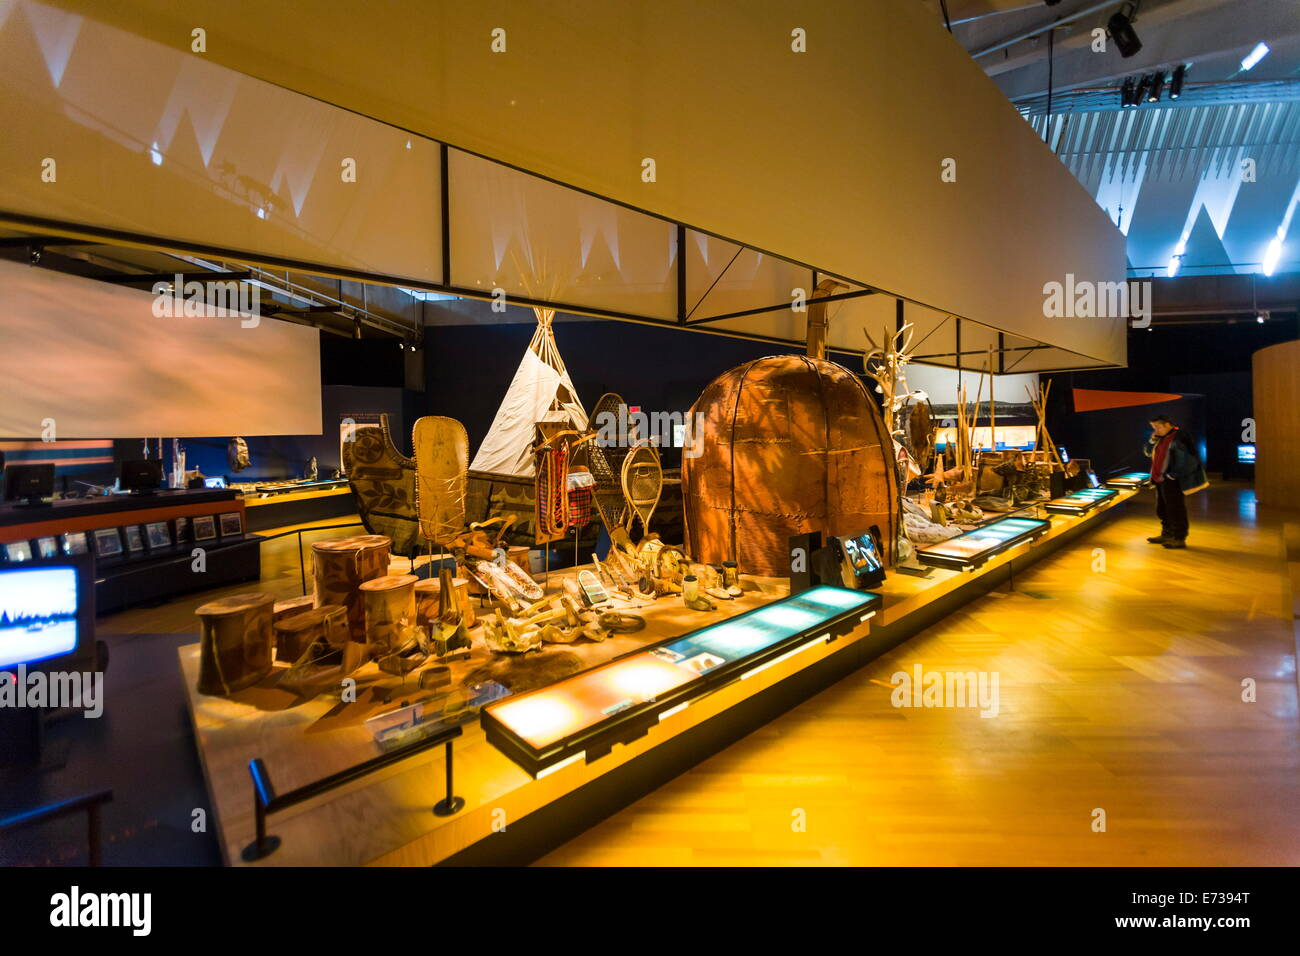 Dispaly of First Nations artifacts, Museum of Civilization, Quebec City, Quebec, Canada, North America - Stock Image